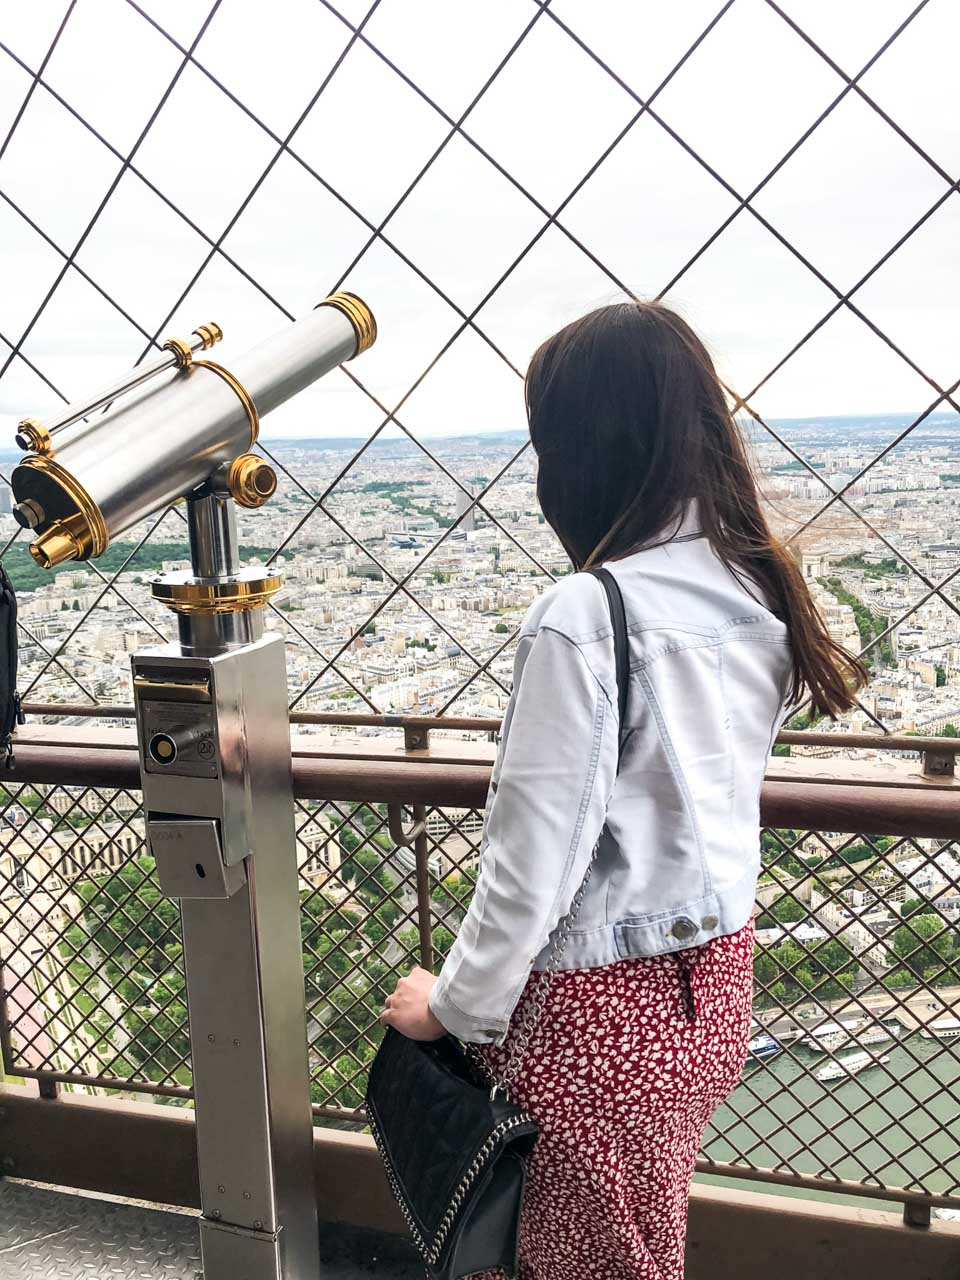 A dark-haired woman in a light denim jacket and a white and red floral dress clutching her black quilted handbag as she is standing next to the telescope on the observation deck at the top of the Eiffel Tower in Paris, France